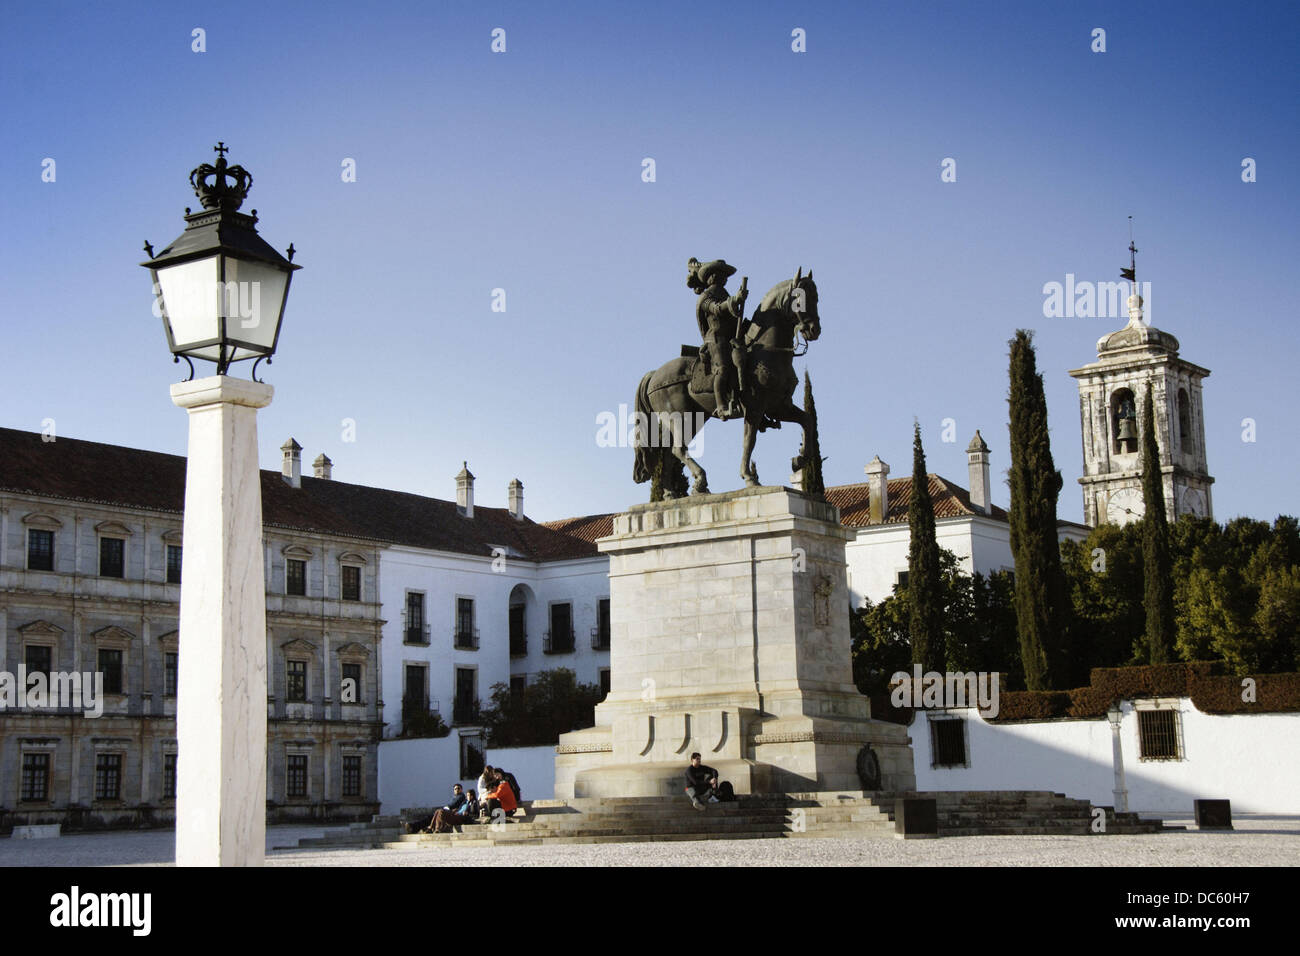 Equestrian statue of King João IV in front of the Ducal Palace, Vila Viçosa. Alentejo, Portugal - Stock Image